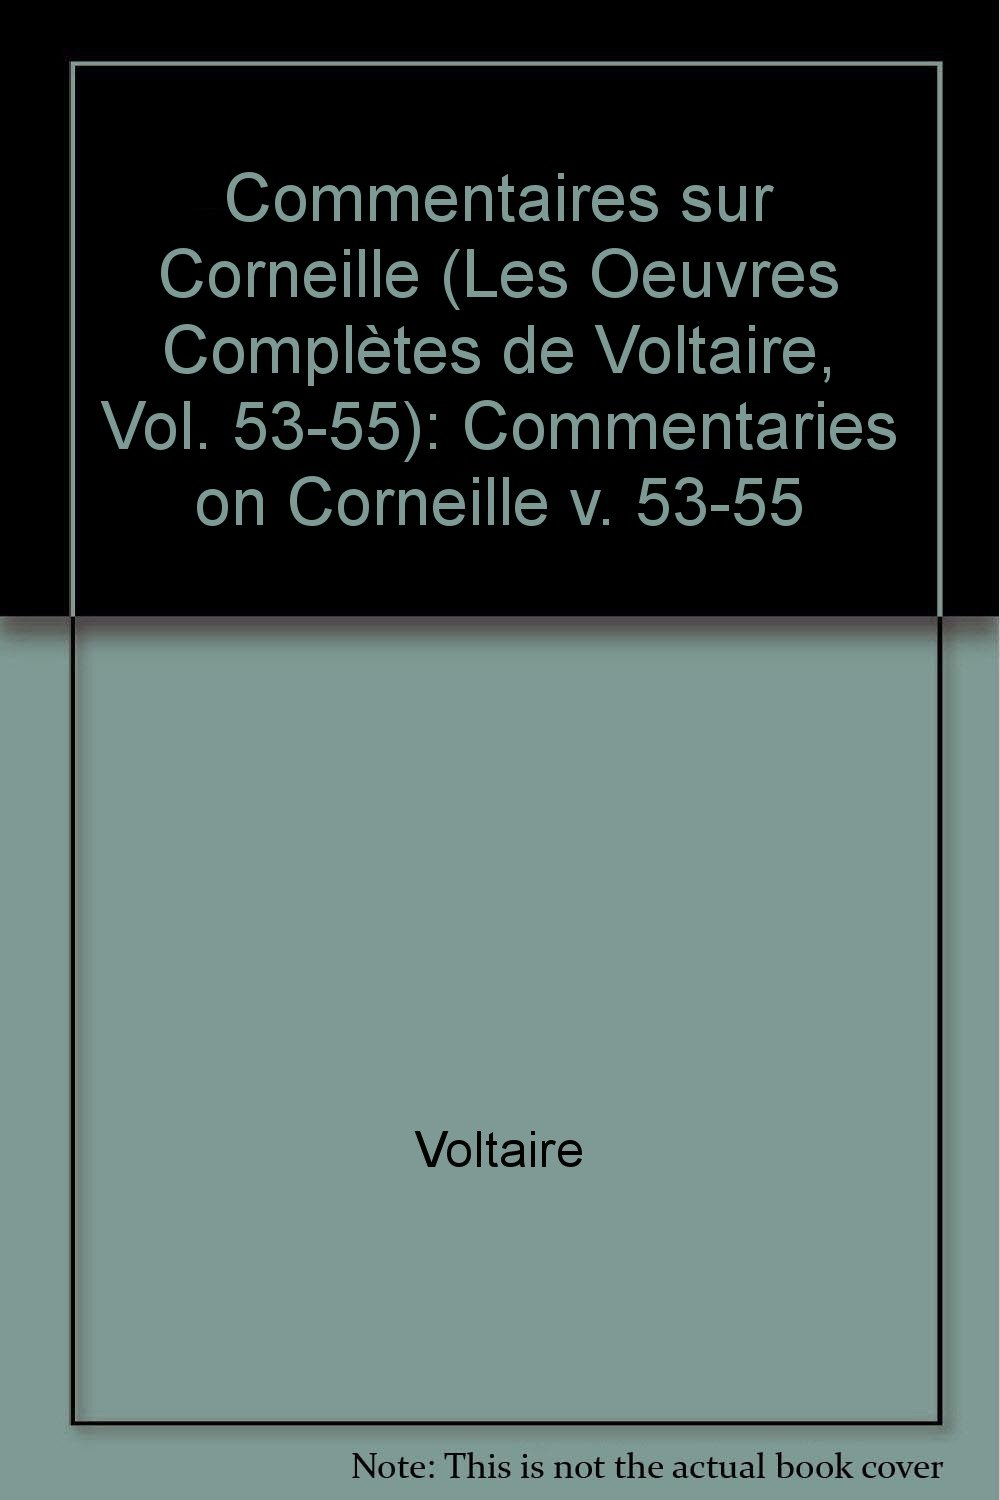 com the complete works of voltaire commentaries on  com the complete works of voltaire commentaries on corneille v 53 55 va french edition 9780729400480 voltaire david williams books